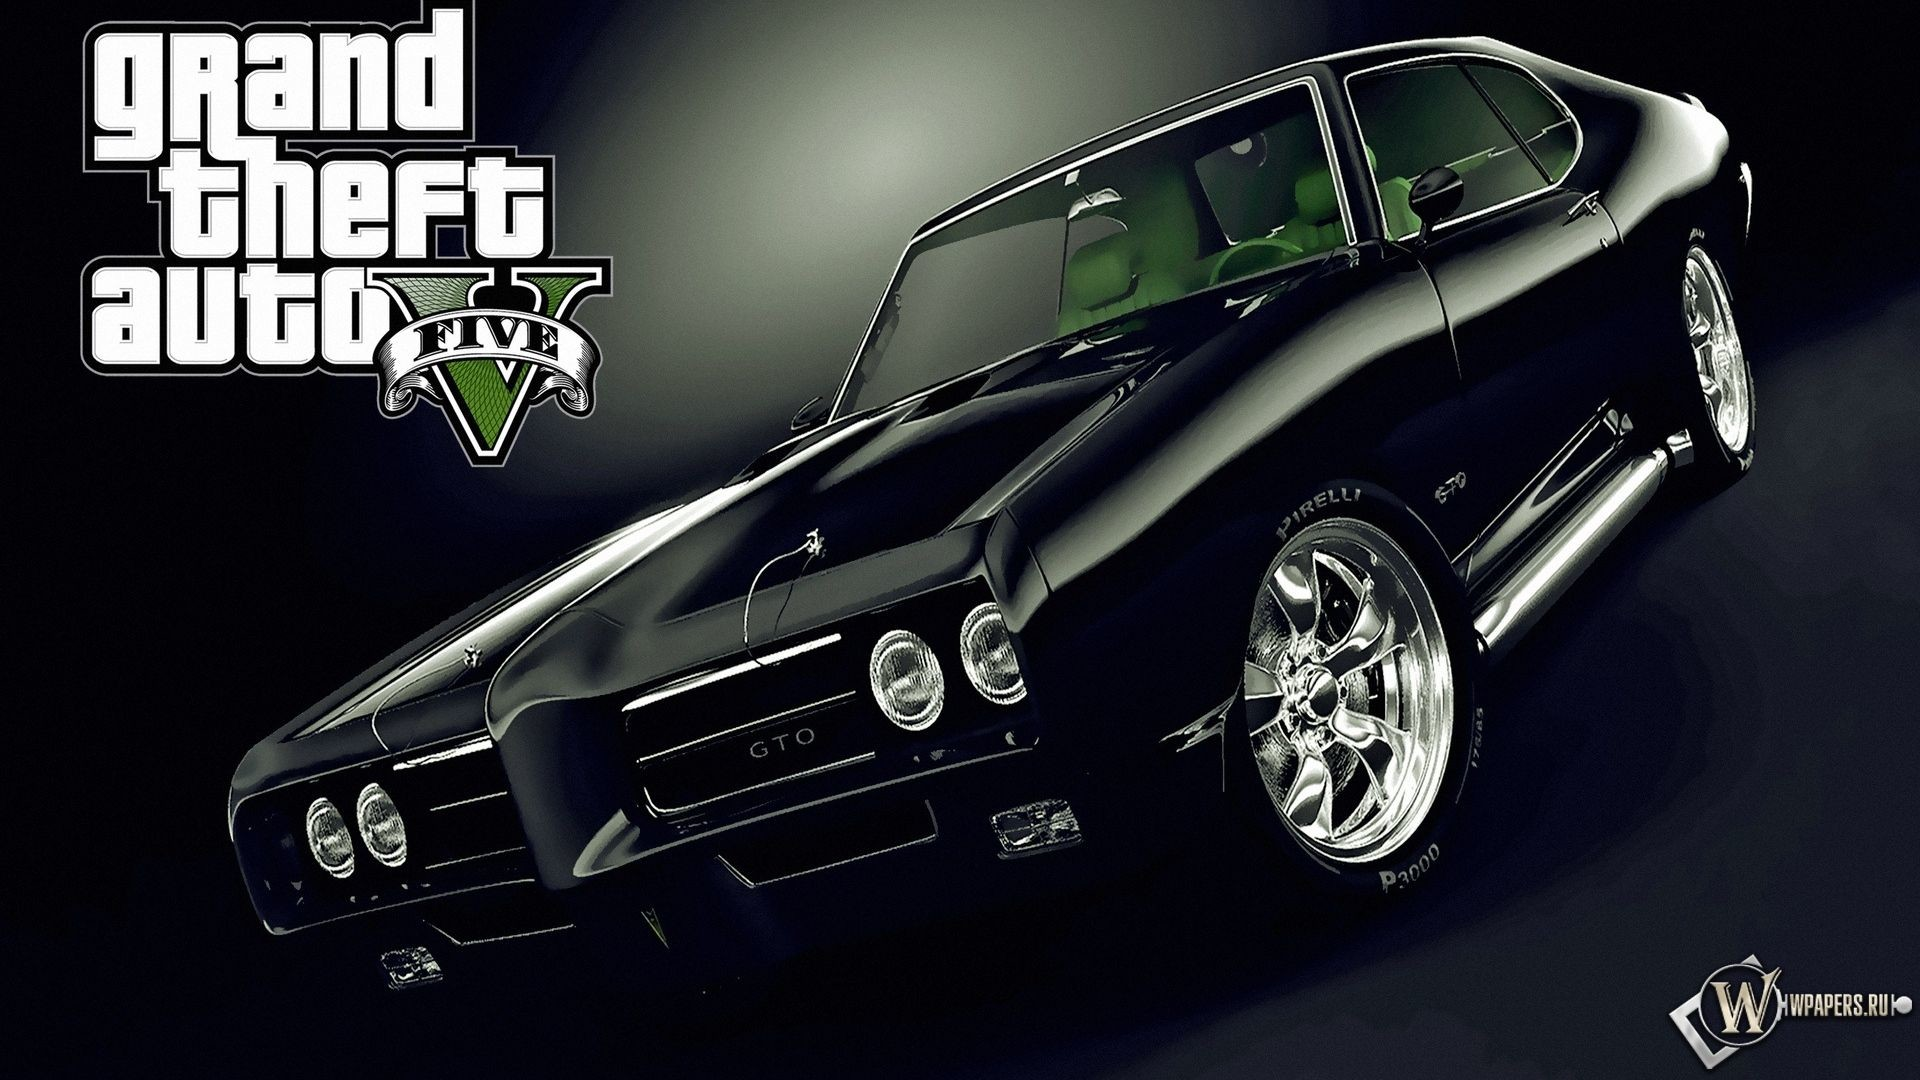 1920x1080 GTA Grand Thef Auto 5 Wallpaper Car Wallpaper